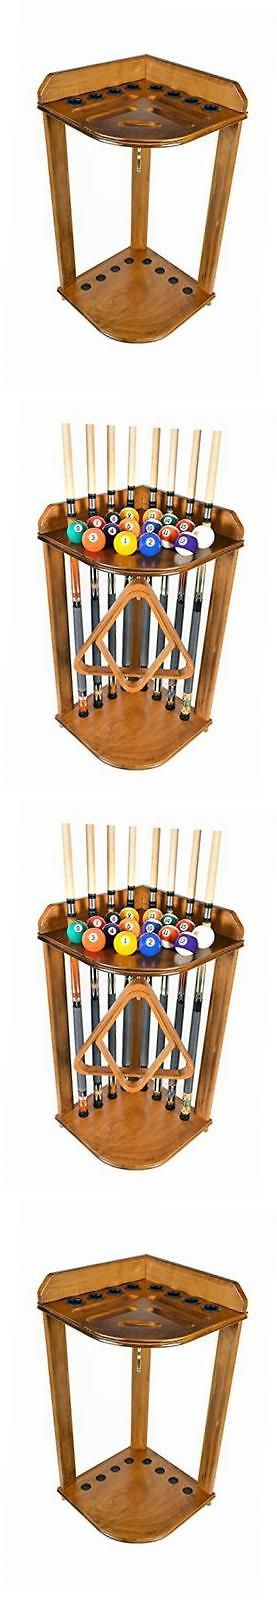 Ball and Cue Racks 75185: Pool Cue Rack Only - Billiard Stick Stand Holds 8 Cues And Ball Set Oak Finish -> BUY IT NOW ONLY: $127.66 on eBay!